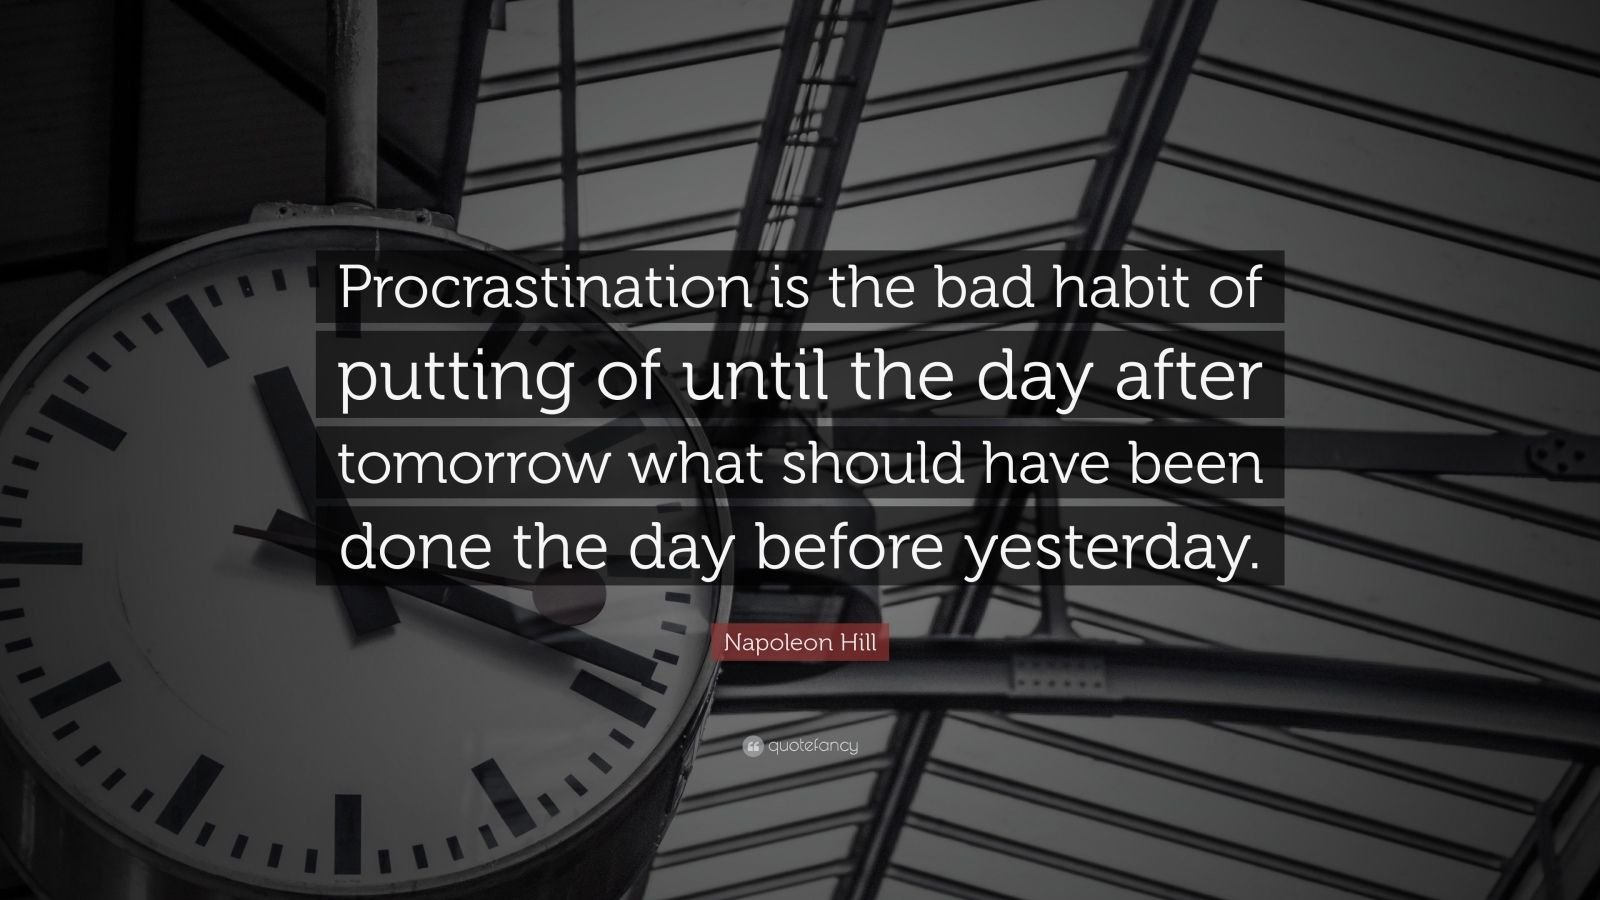 """Napoleon Hill Quote: """"Procrastination is the bad habit of putting of until the day after tomorrow what should have been done the day before yesterday."""""""